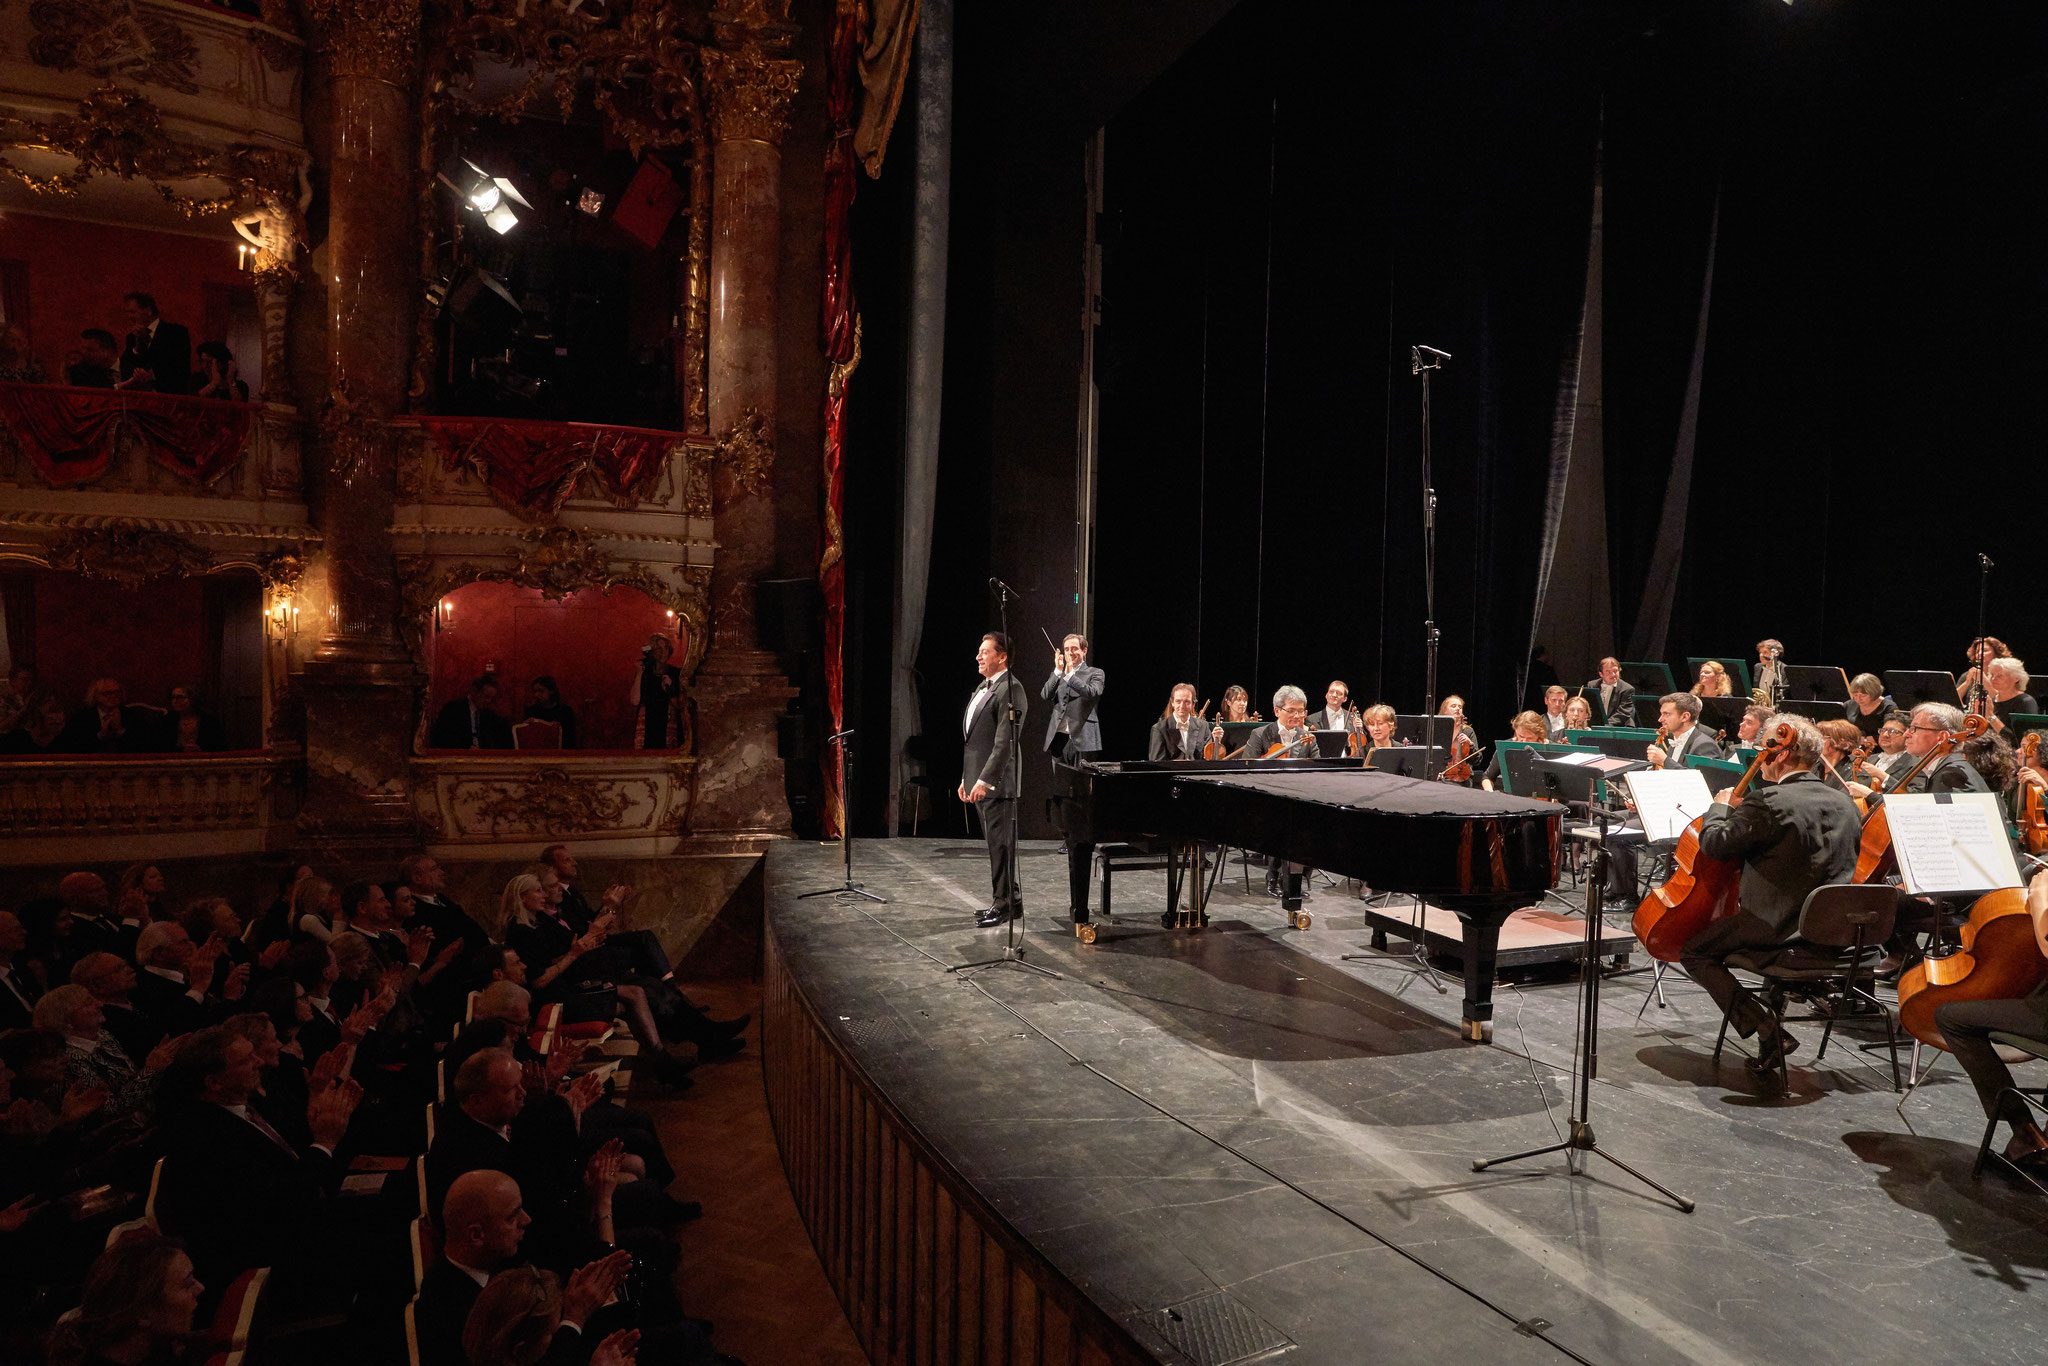 Franzisco Araiza, Carlos Dominguez-Nieto and Philharmonie Baden-Baden (Photo by Jörg Bongartz)